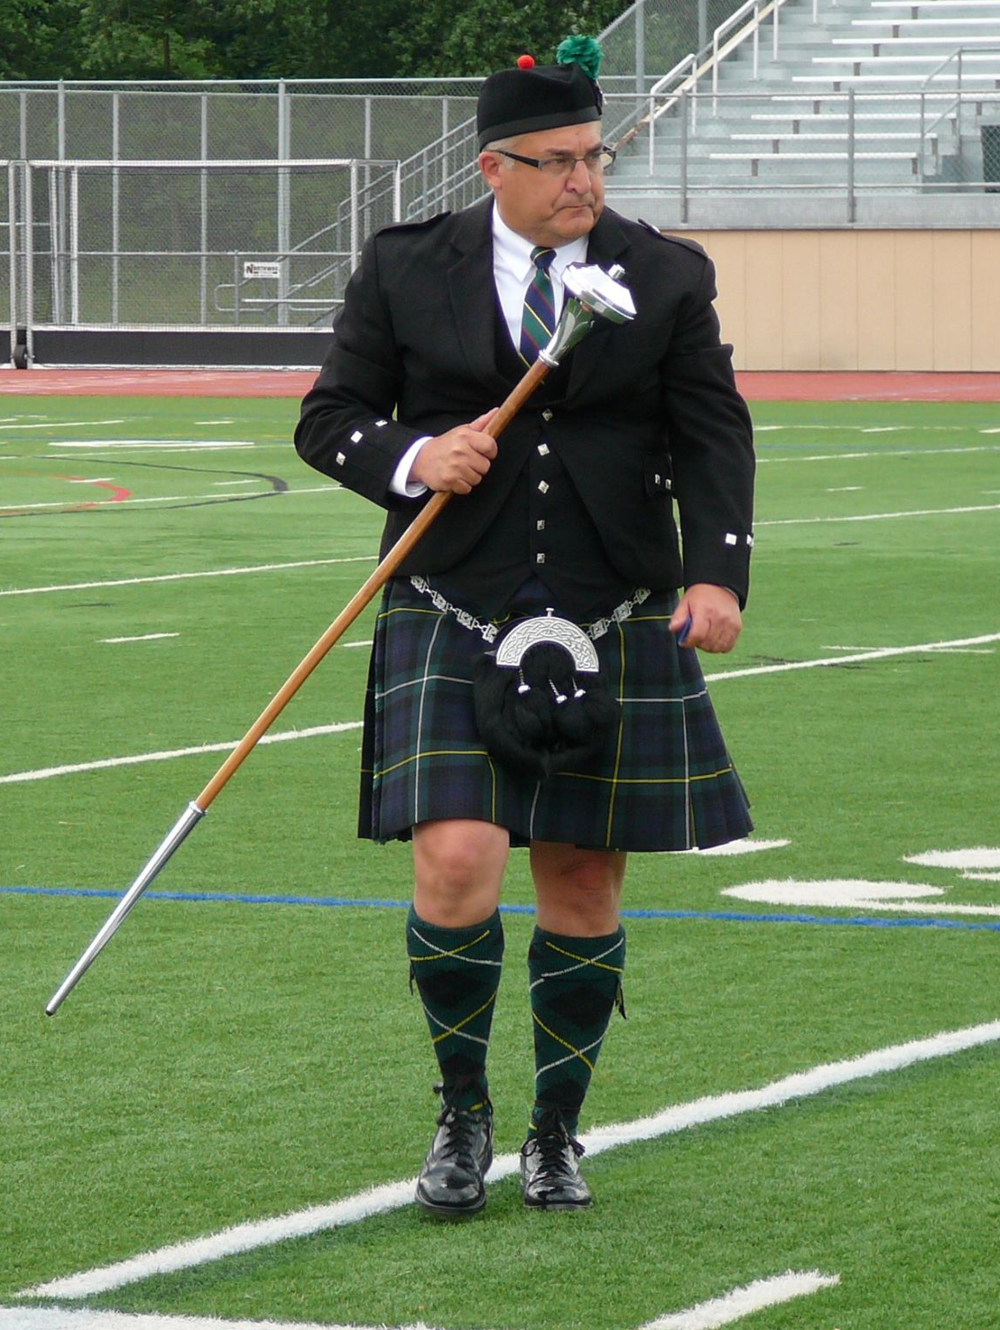 Drum Major Doug Weisheit marching off the field after his 1st place victory.